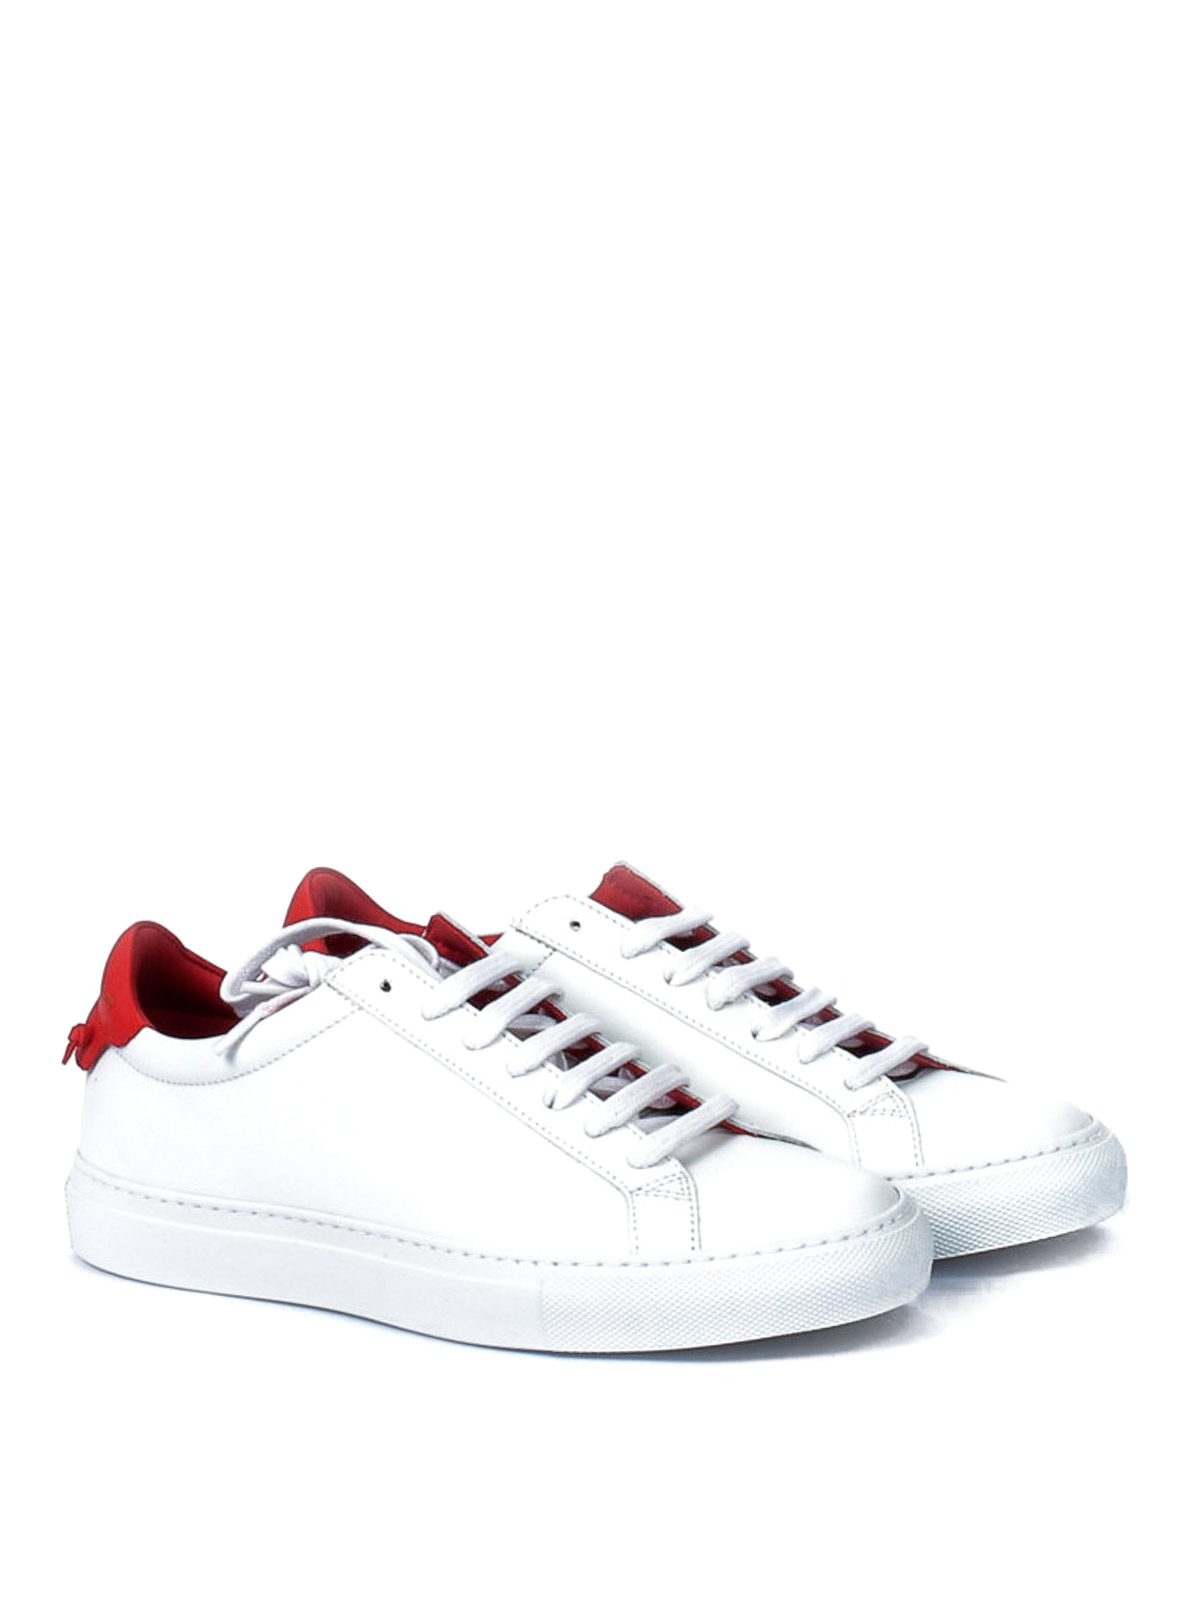 Knots red insert leather sneakers